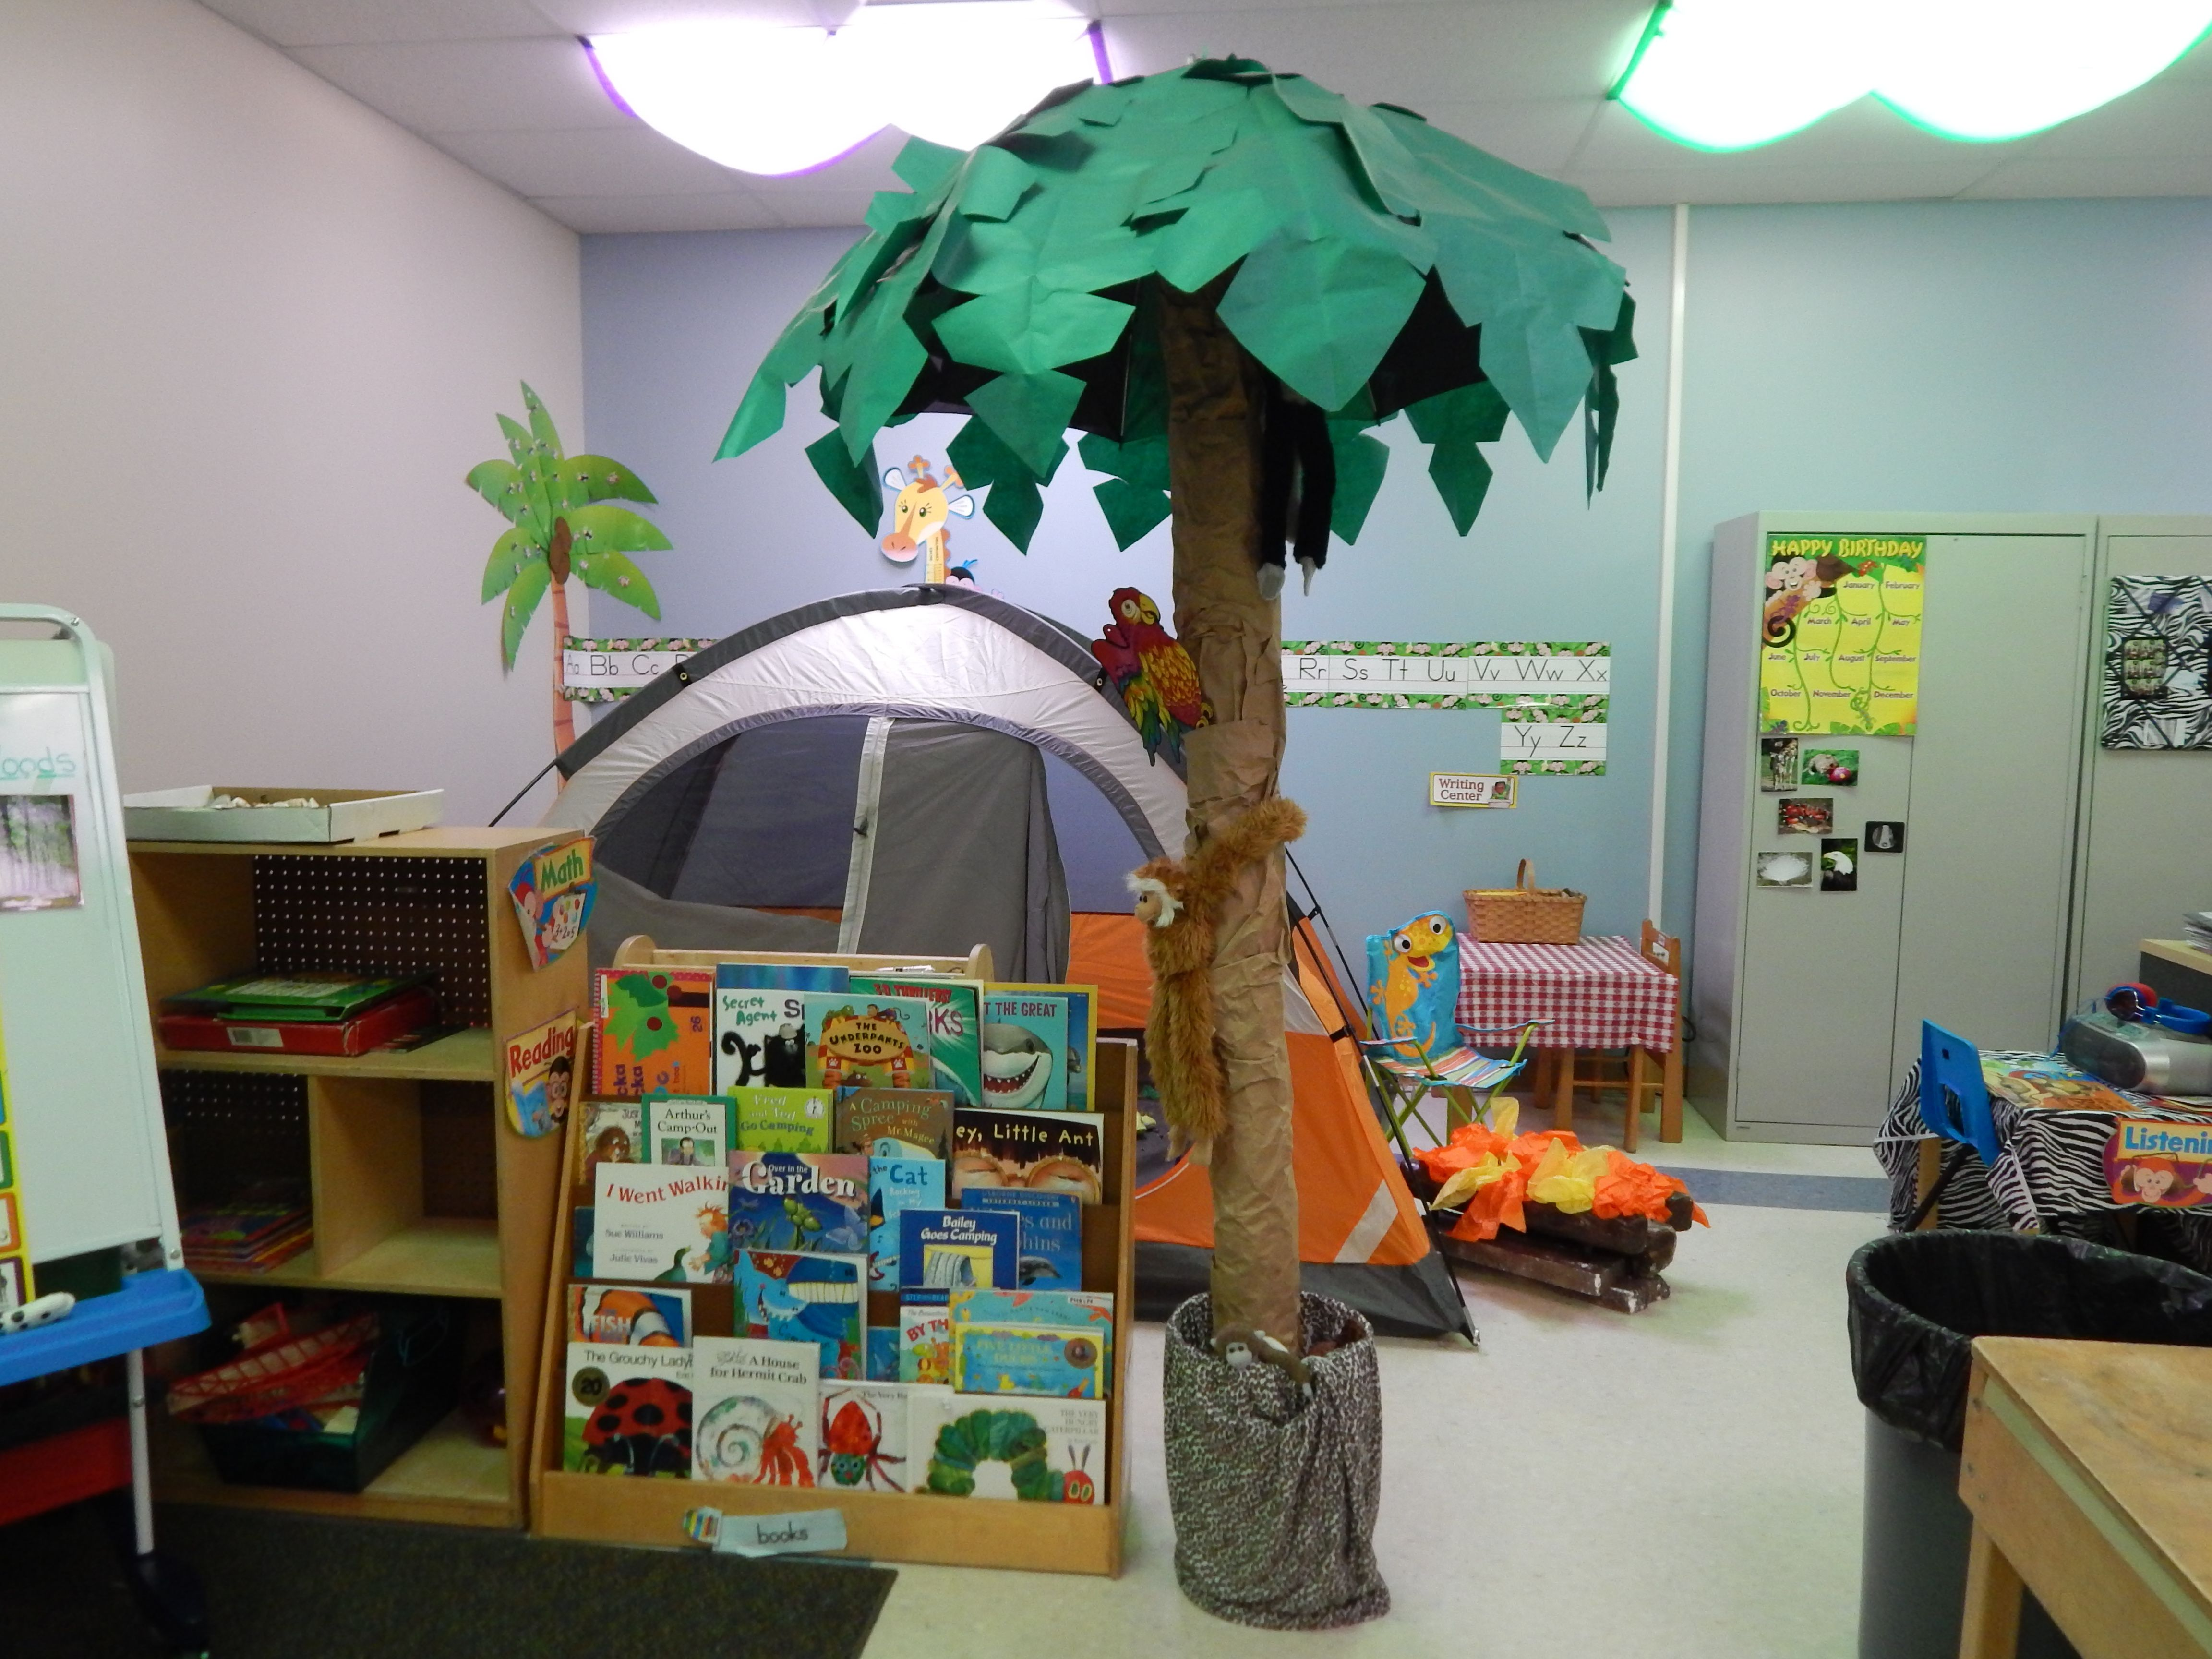 Classroom Decorating Ideas Camping Theme : Camping classroom ideas pinterest